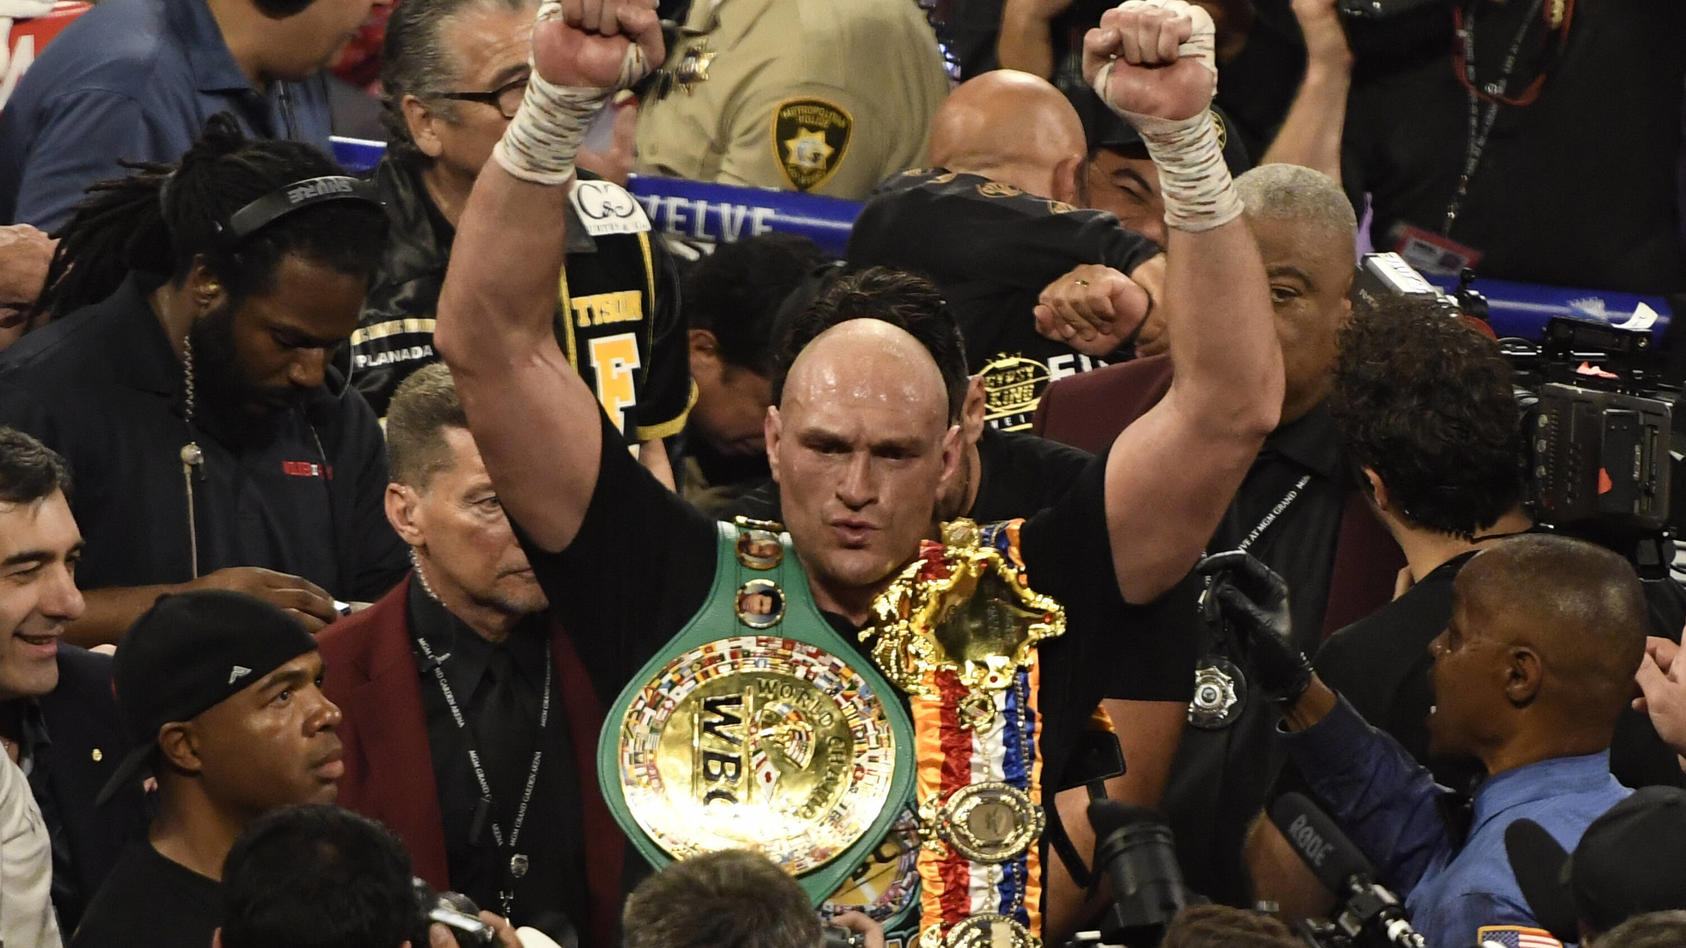 LAS VEGAS, NV - FEBRUARY 22: Tyson Fury holds his belts after going 7 rounds with Deontay Wilder at the MGM Grand Hotel